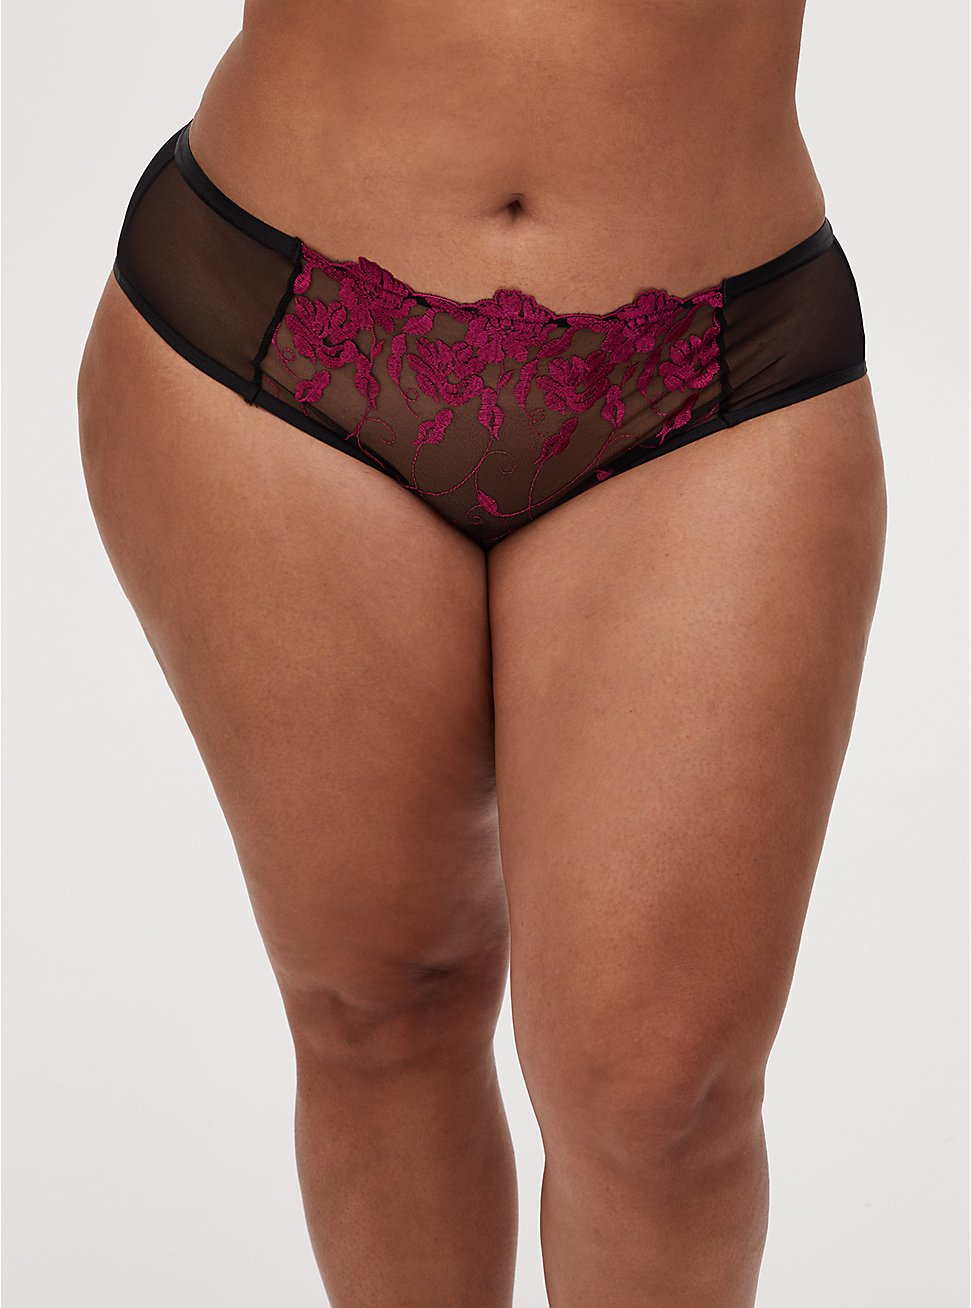 Black Mesh & Raspberry Pink Embroidered Hipster Panty, , hi-res